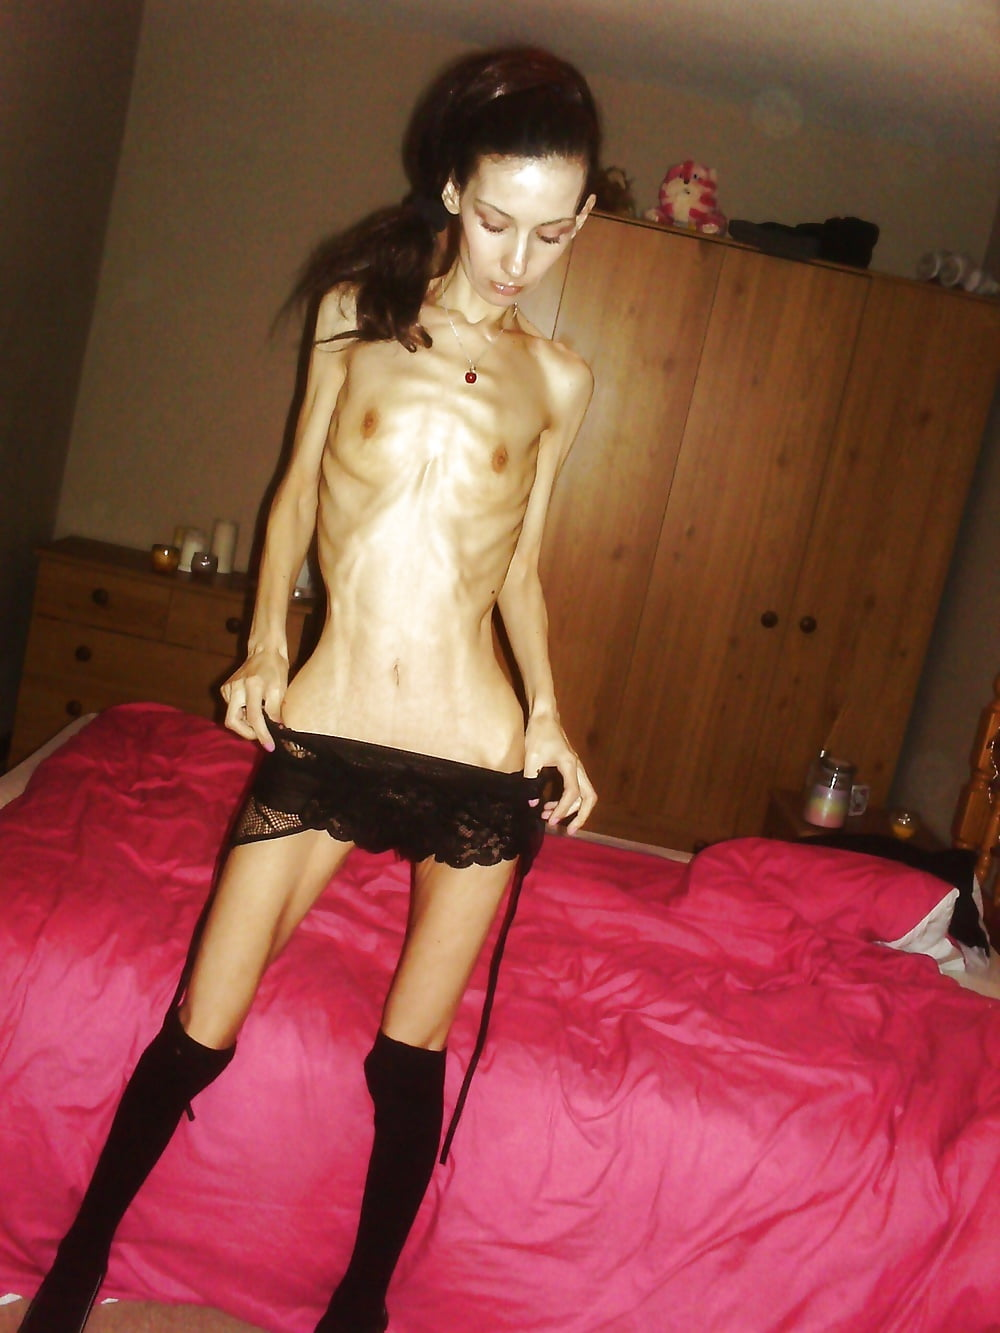 Anorexia tits, action of sex